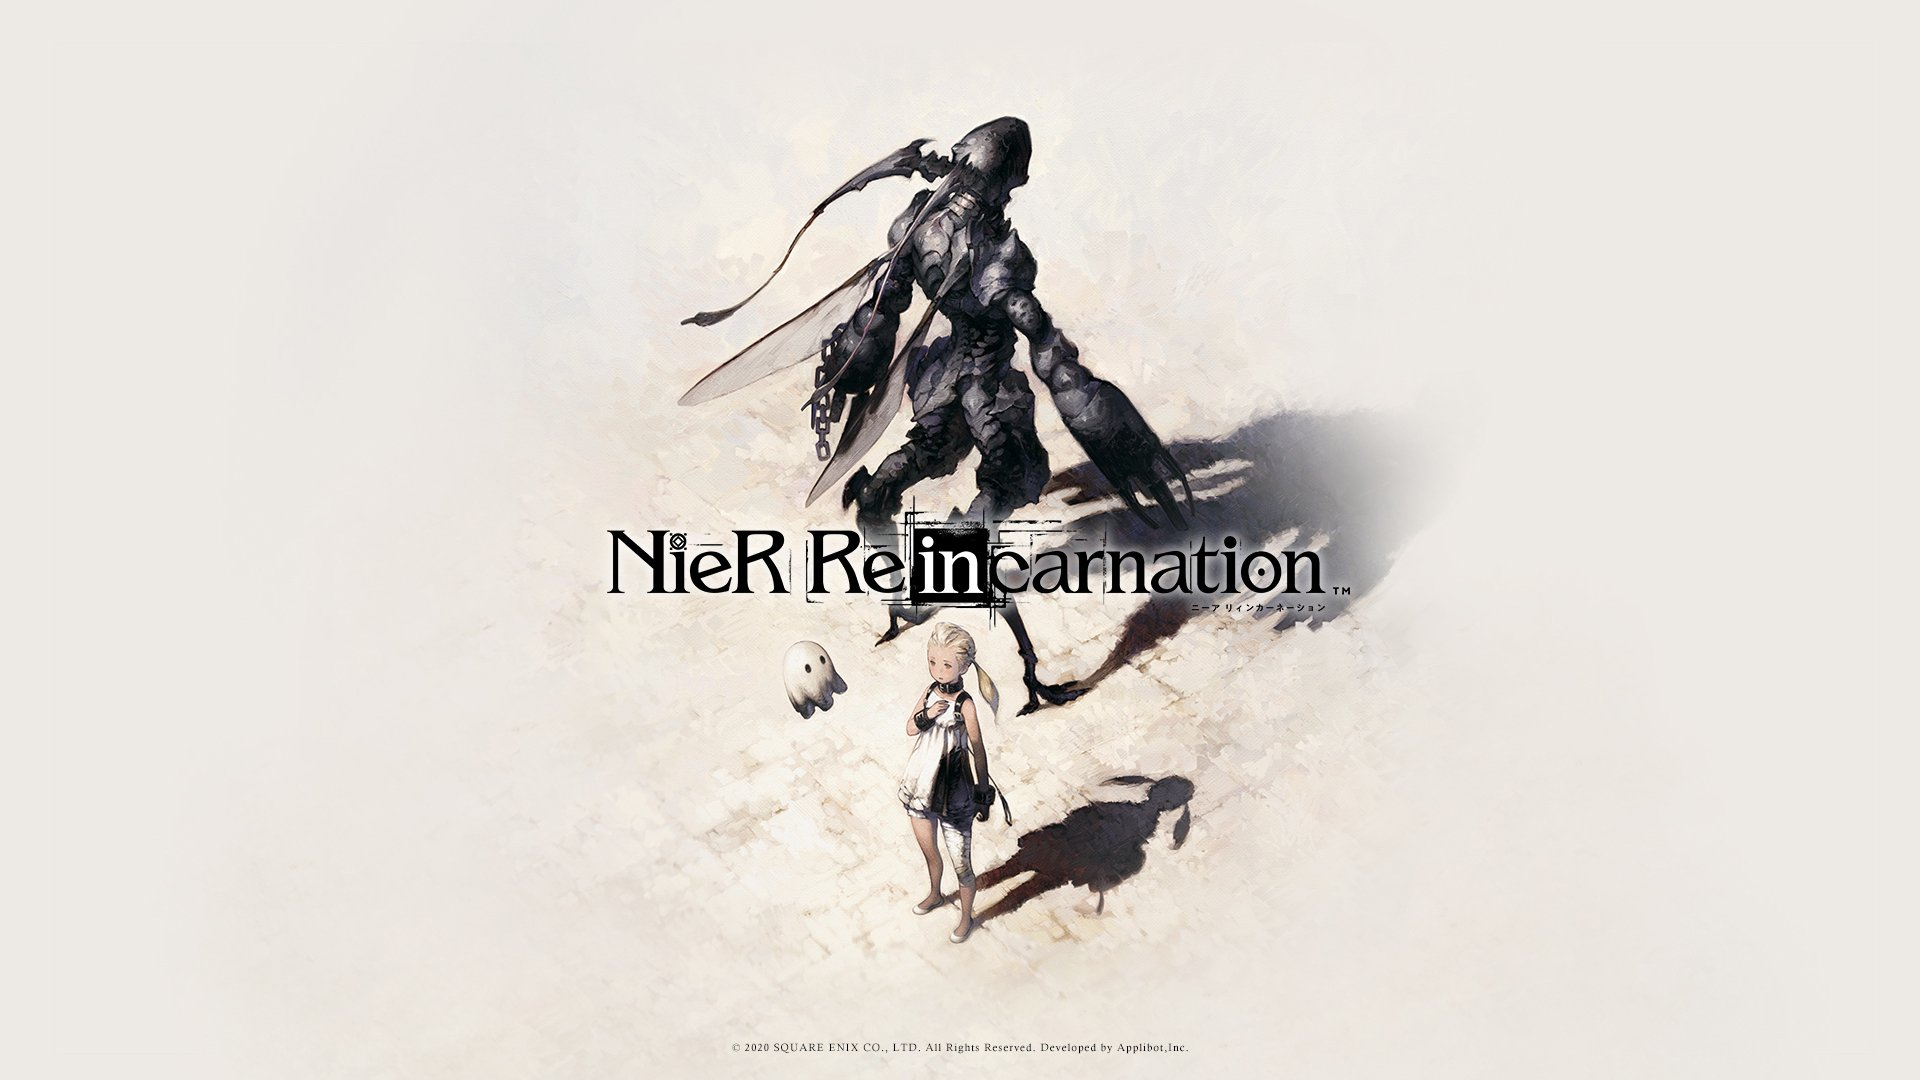 เกม NieR Re[in]carnation